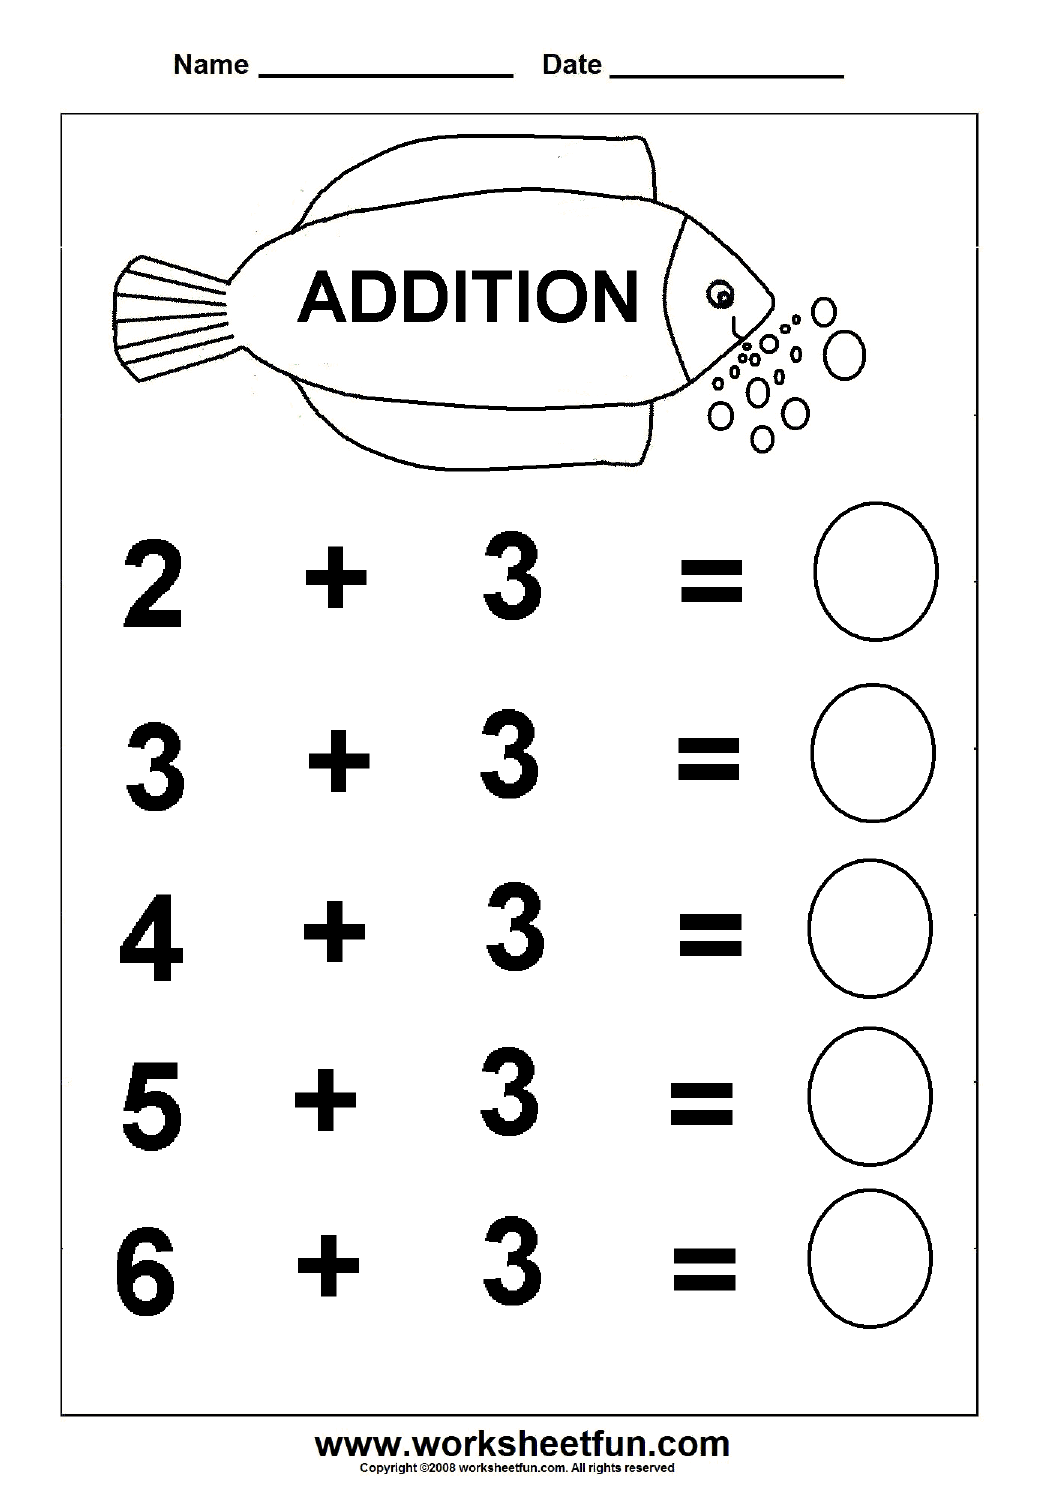 Worksheets In Addition With The Best Worksheets Image Collection